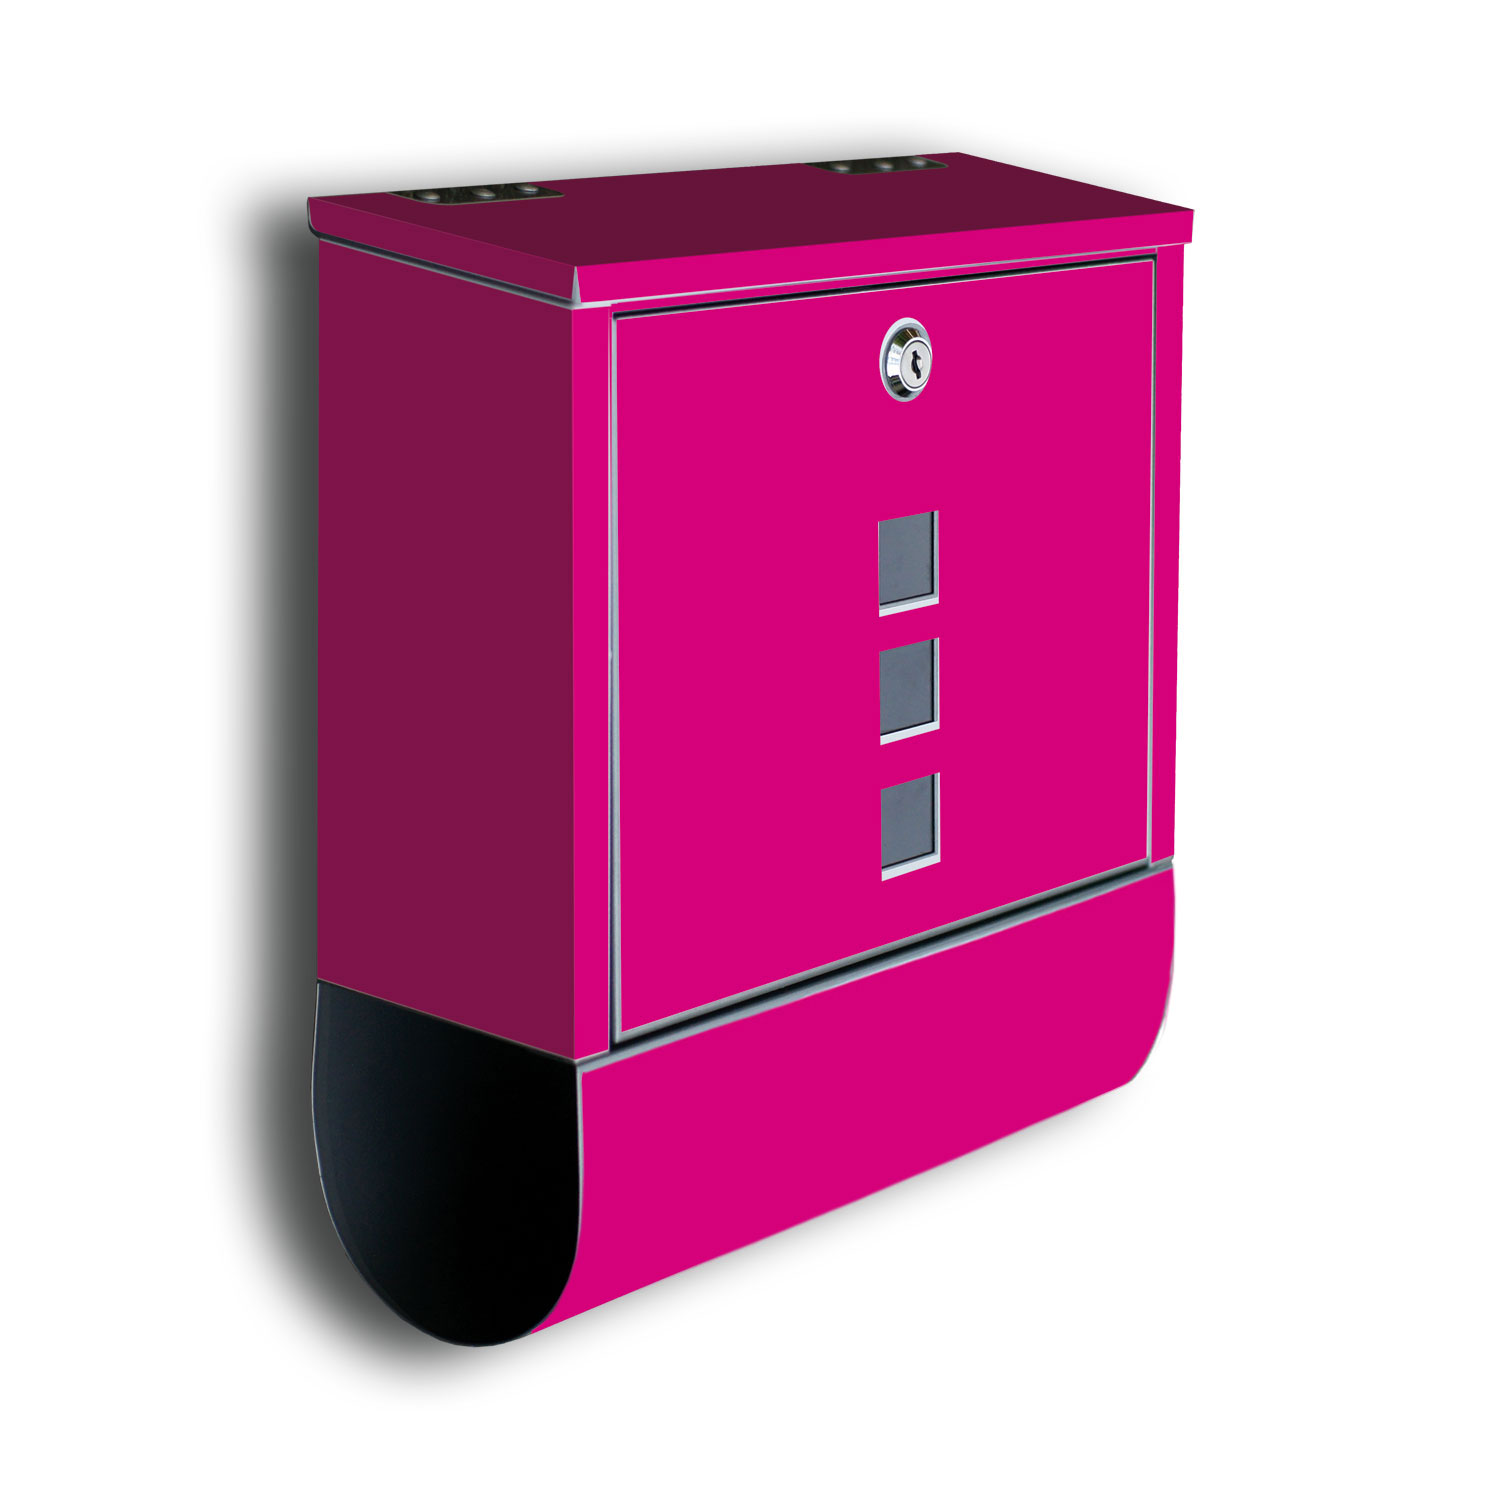 wandmotiv24 briefkasten uni pink mit zeitungsrolle. Black Bedroom Furniture Sets. Home Design Ideas